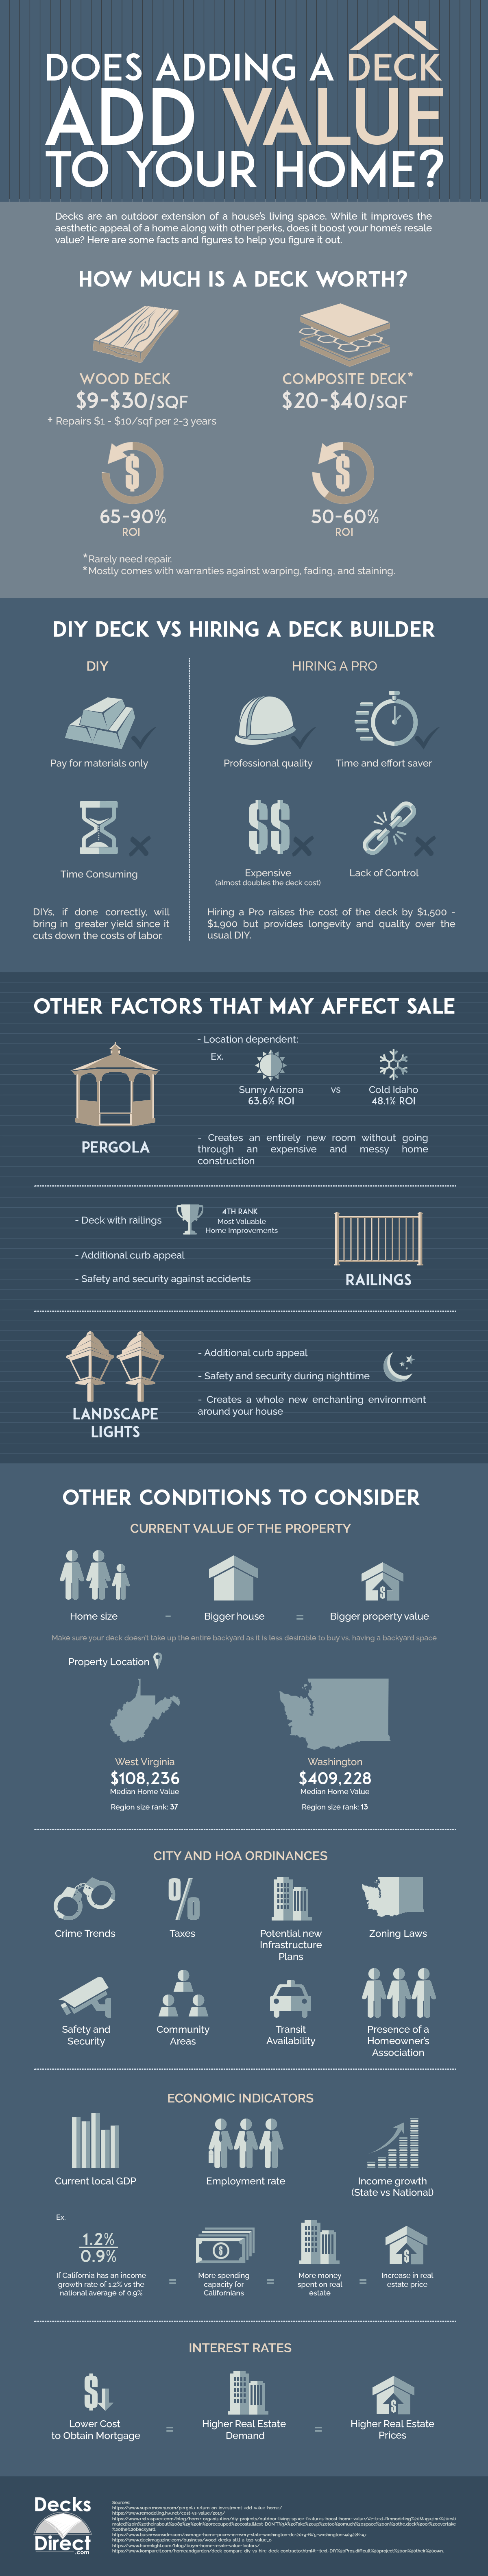 Learn more about the value your home will gain by adding a deck to your home's outdoor space with these helpful infographic